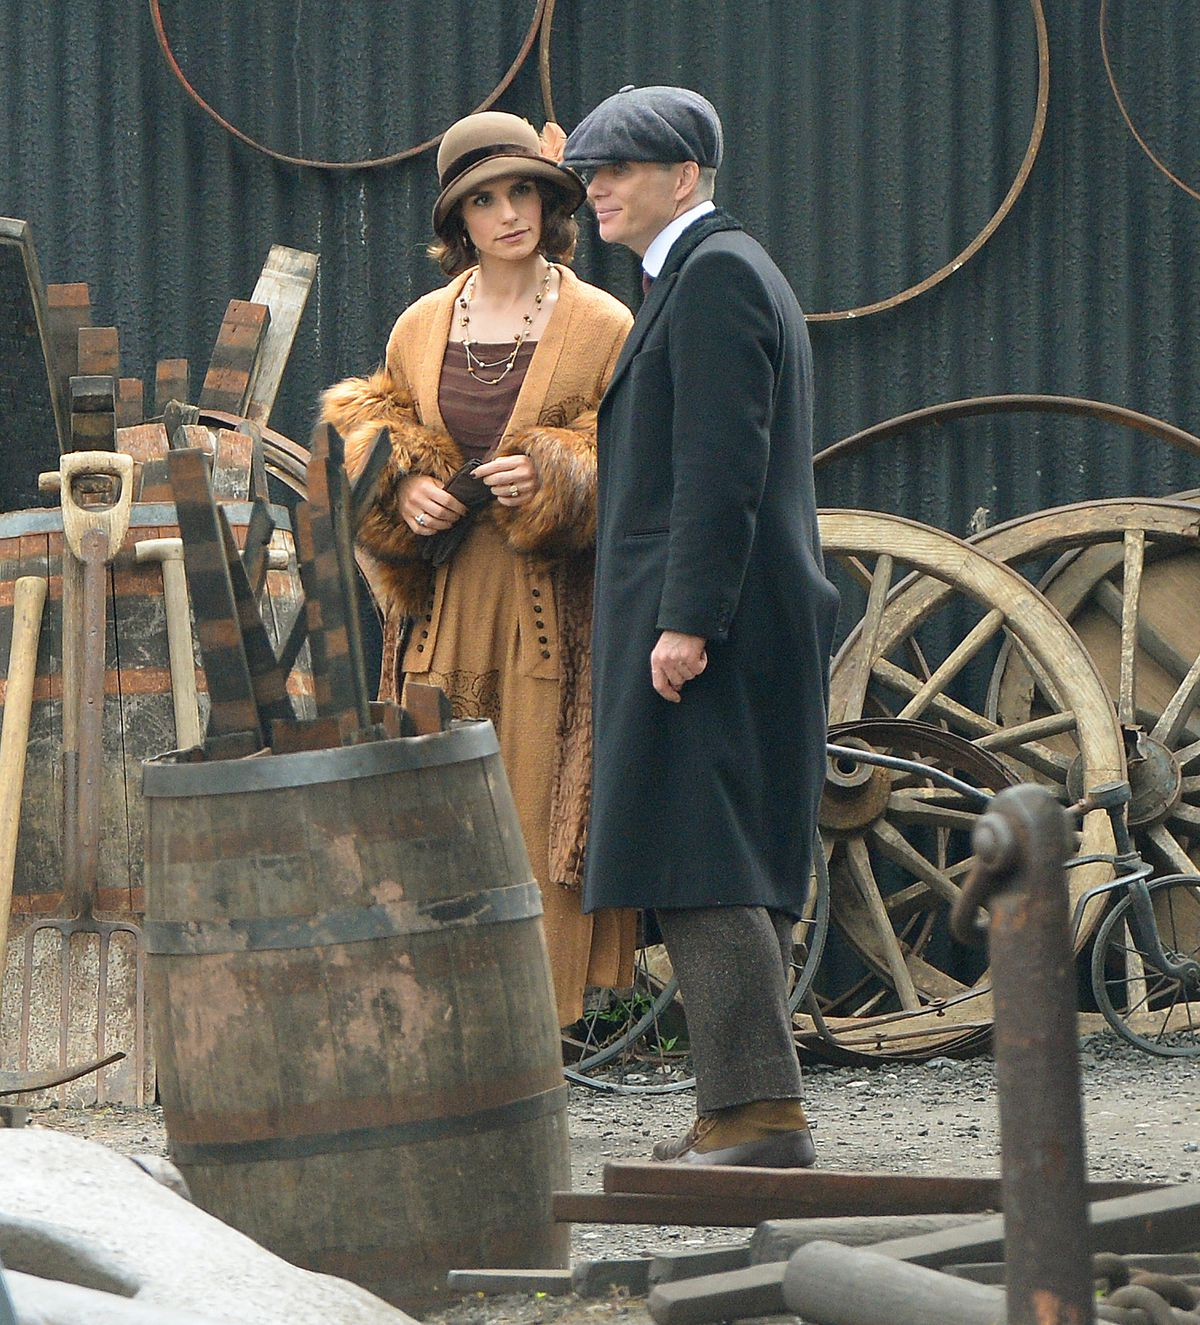 Cillian Murphy and Charlotte Riley on set at the Black Country Living Museum